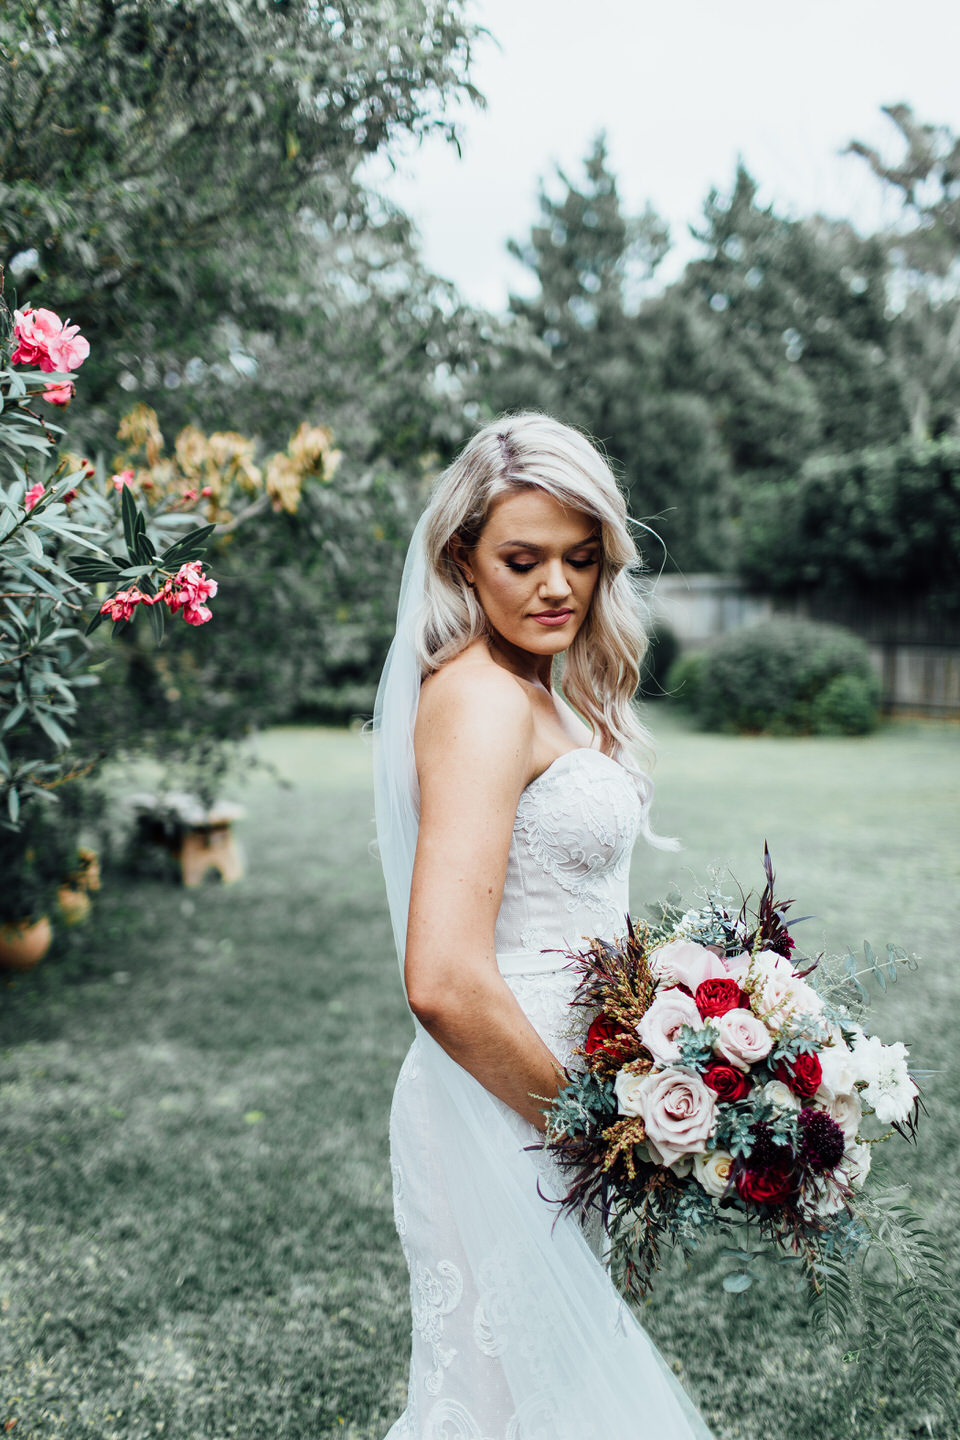 Bride wearing dress by Malachi Empire and holding Verda Flore bouquet in Vaucluse Sydney